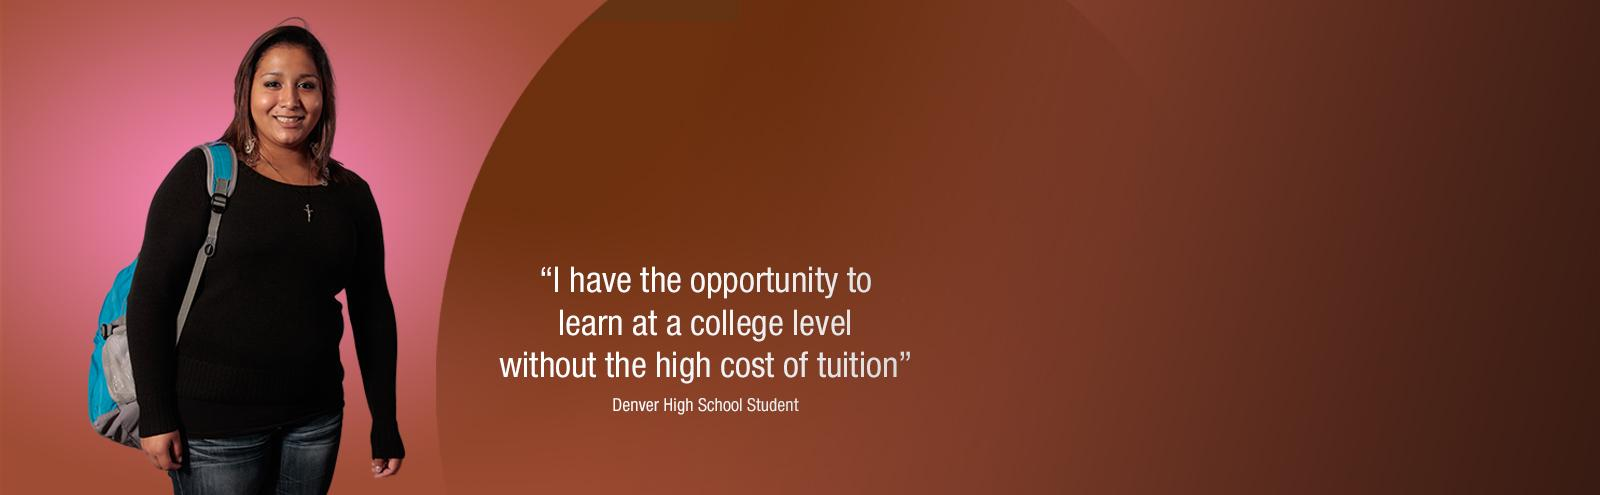 denver high school student with quote on saving money on tuition